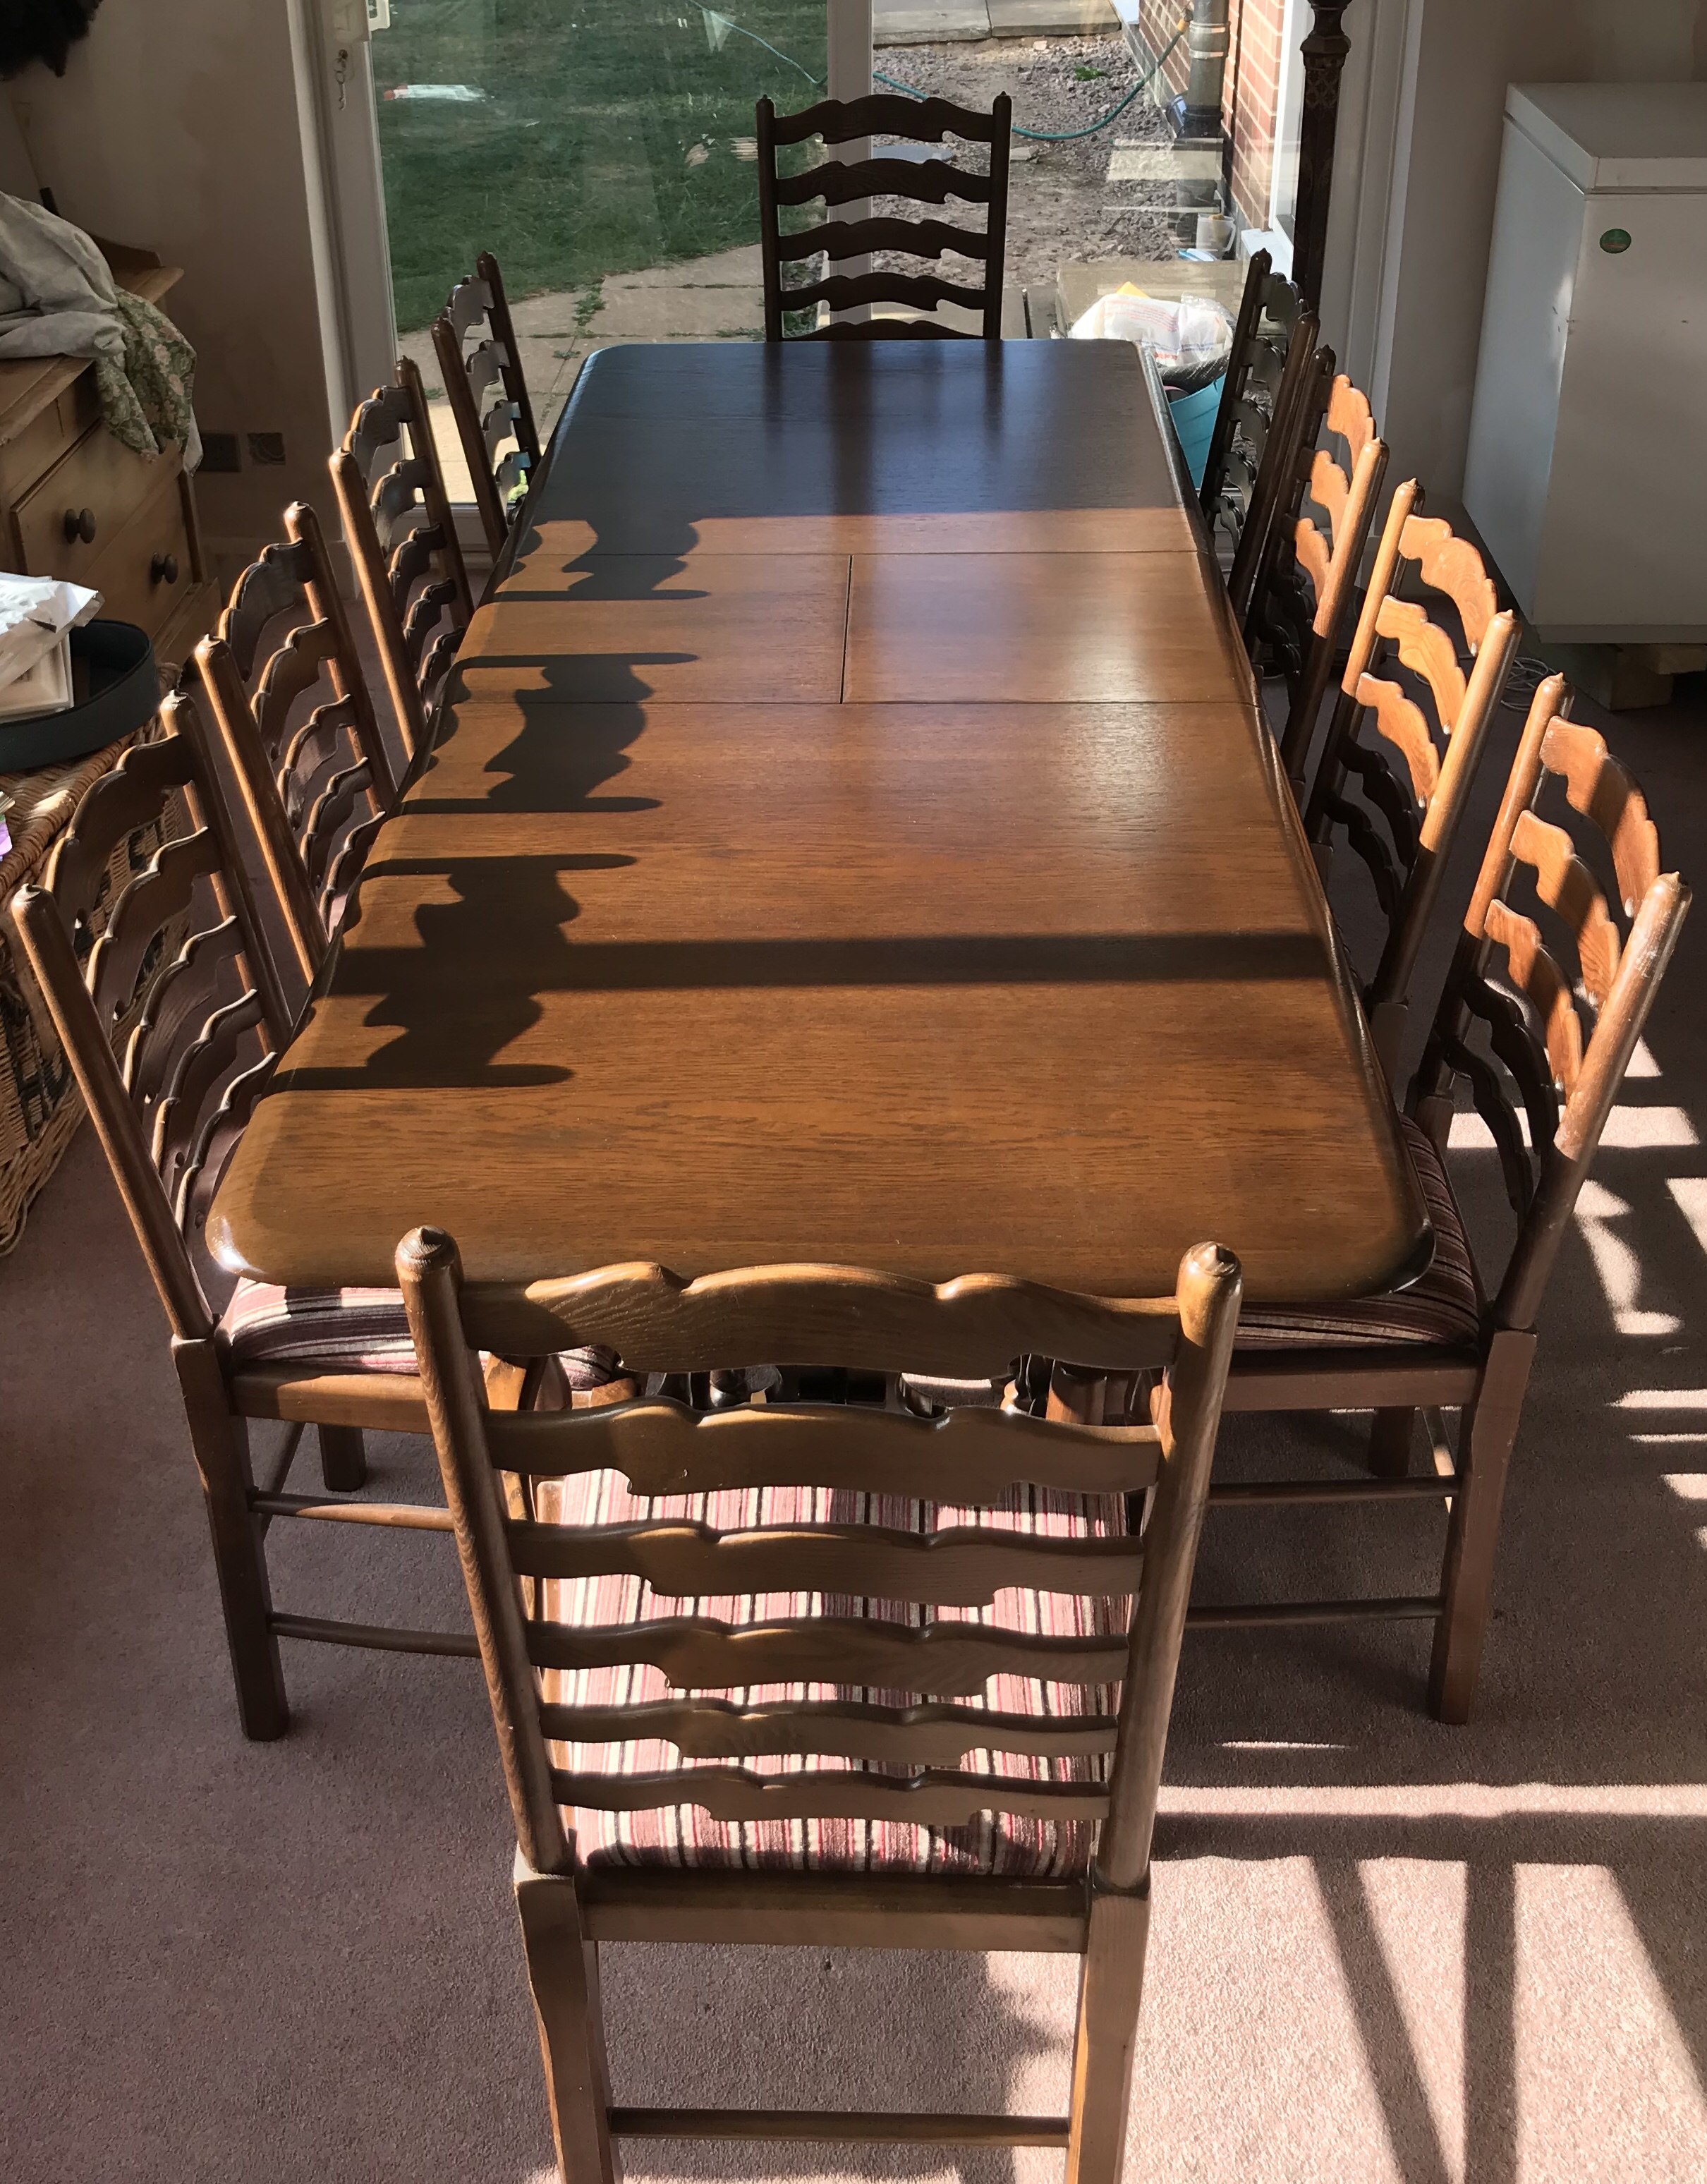 Priory Dark Oak 10 Seater Dining Table For Sale In Great Glen